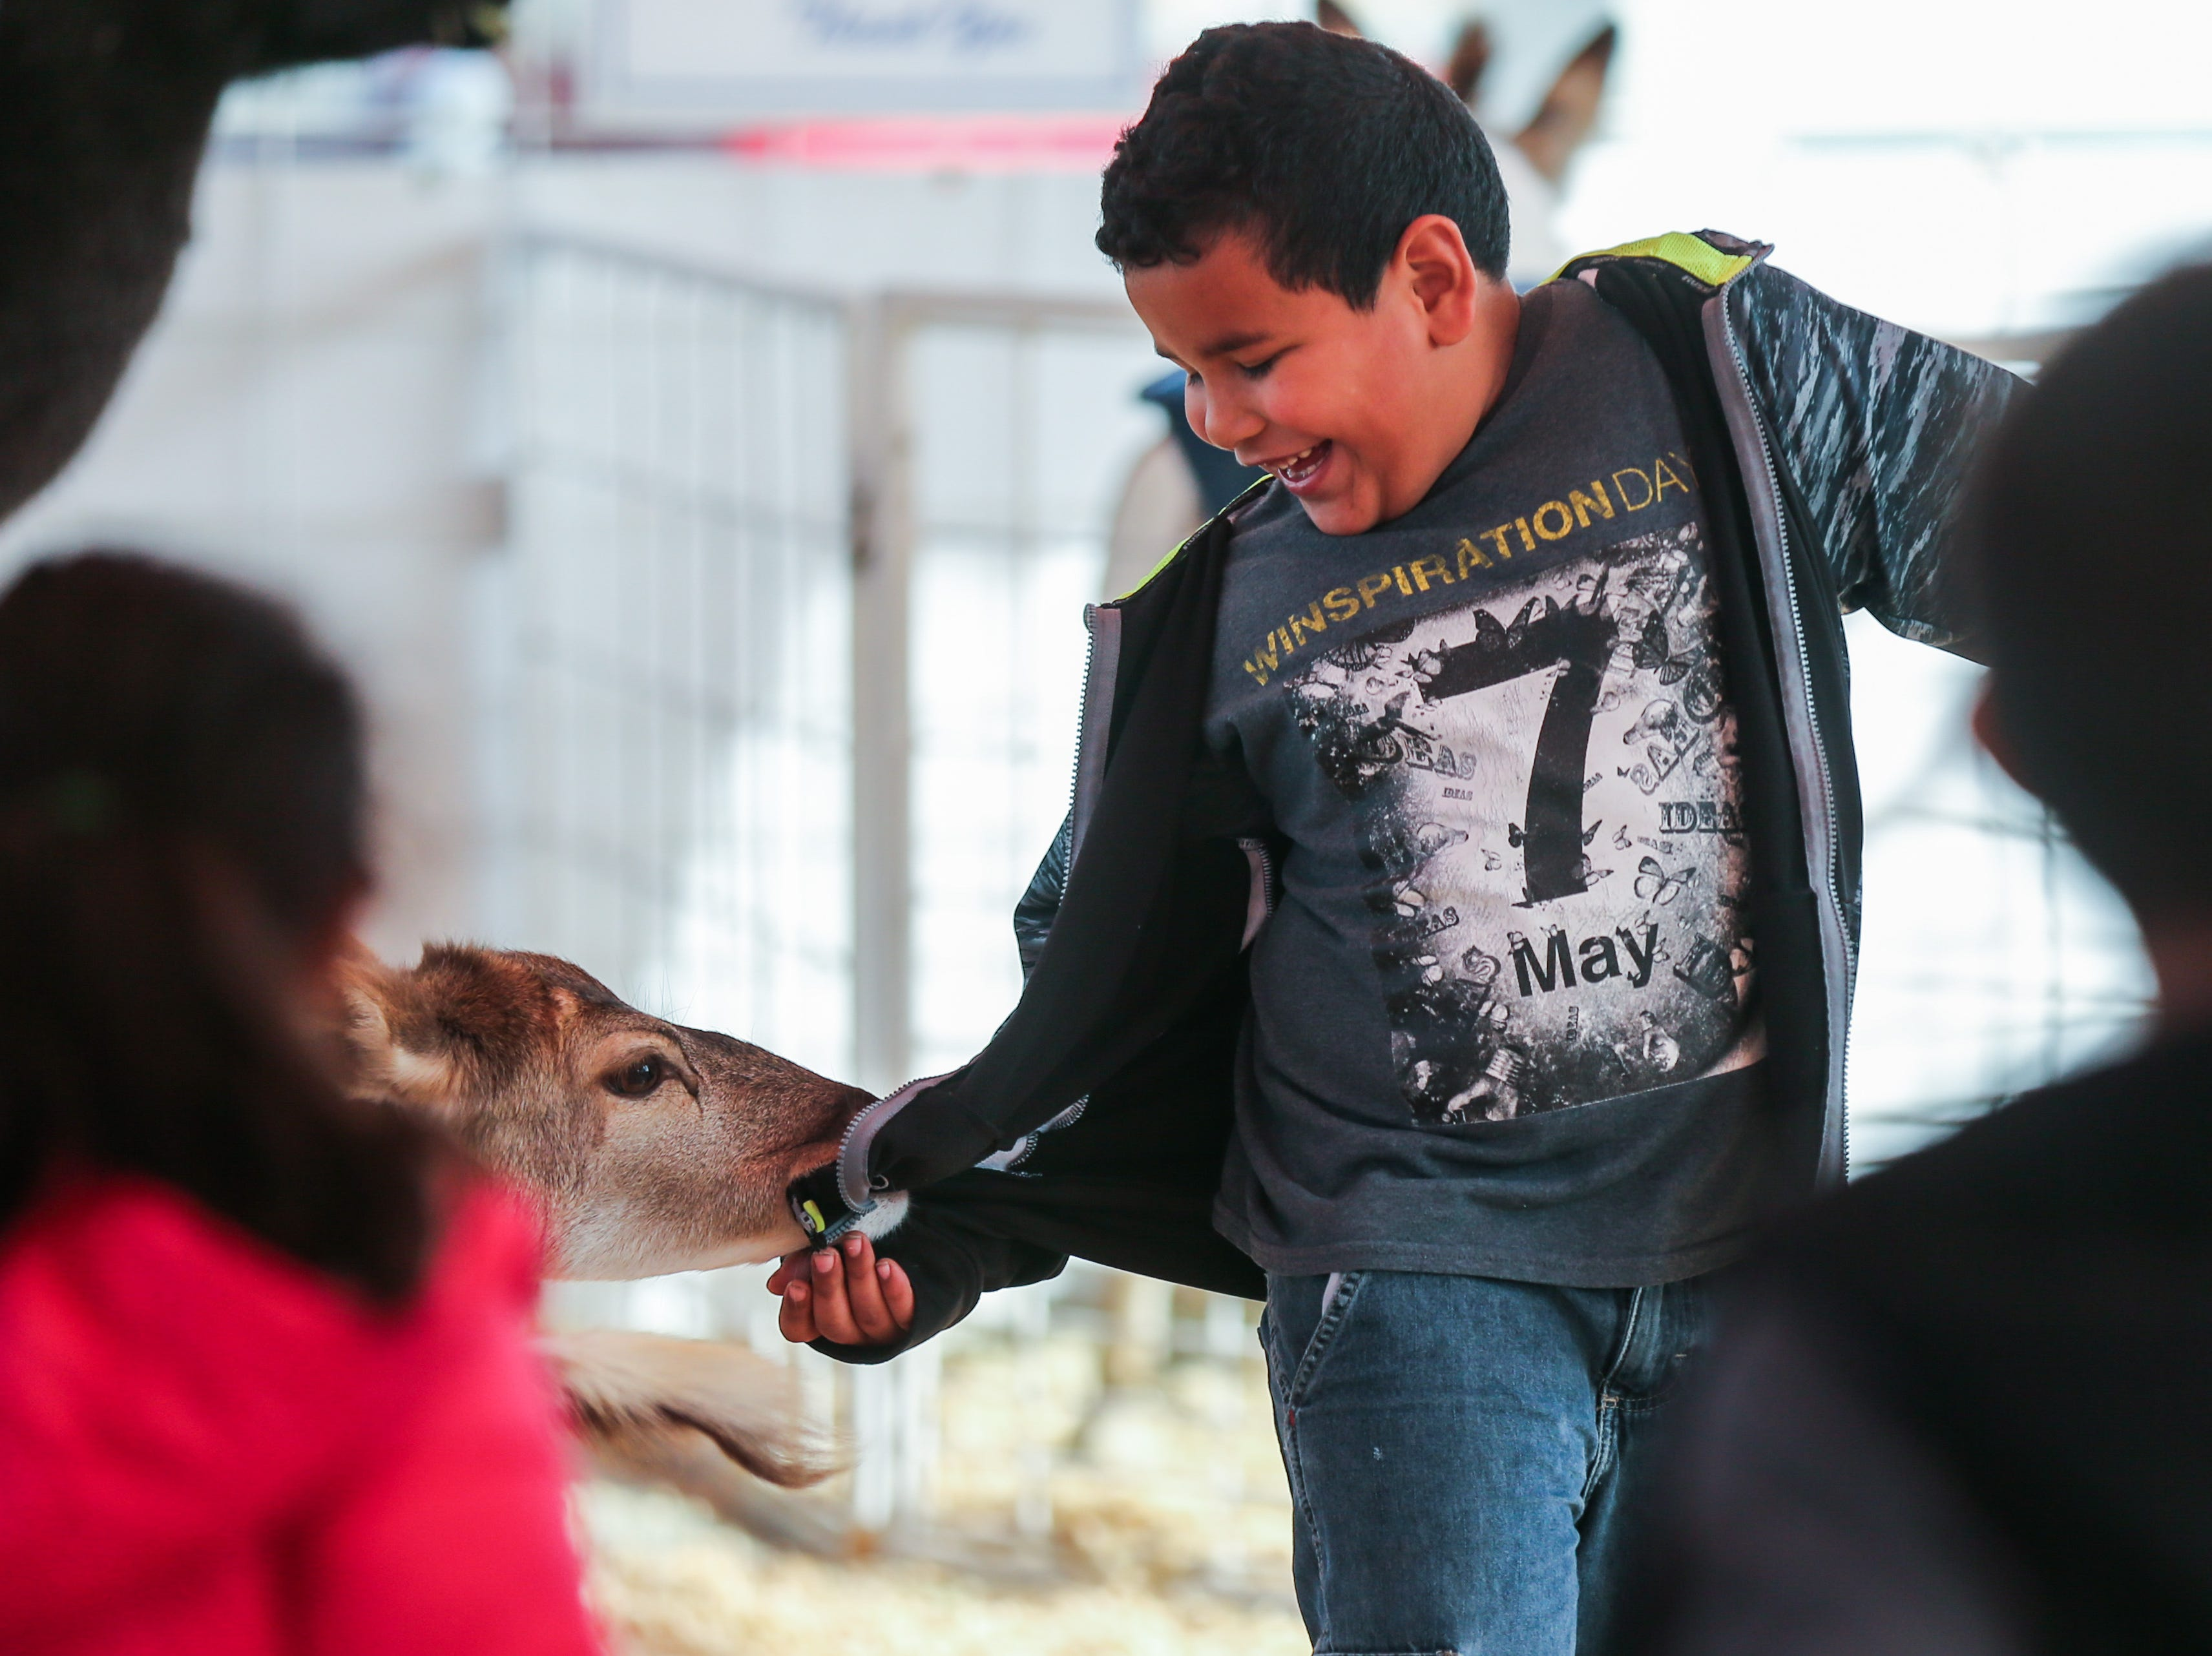 Brandon Montoya, 5, laughs as a deer nibbles on the back of his shirt during a field trip to the San Angelo Stock Show & Rodeo Tuesday, Feb. 5, 2019, at the San Angelo Fairgrounds.